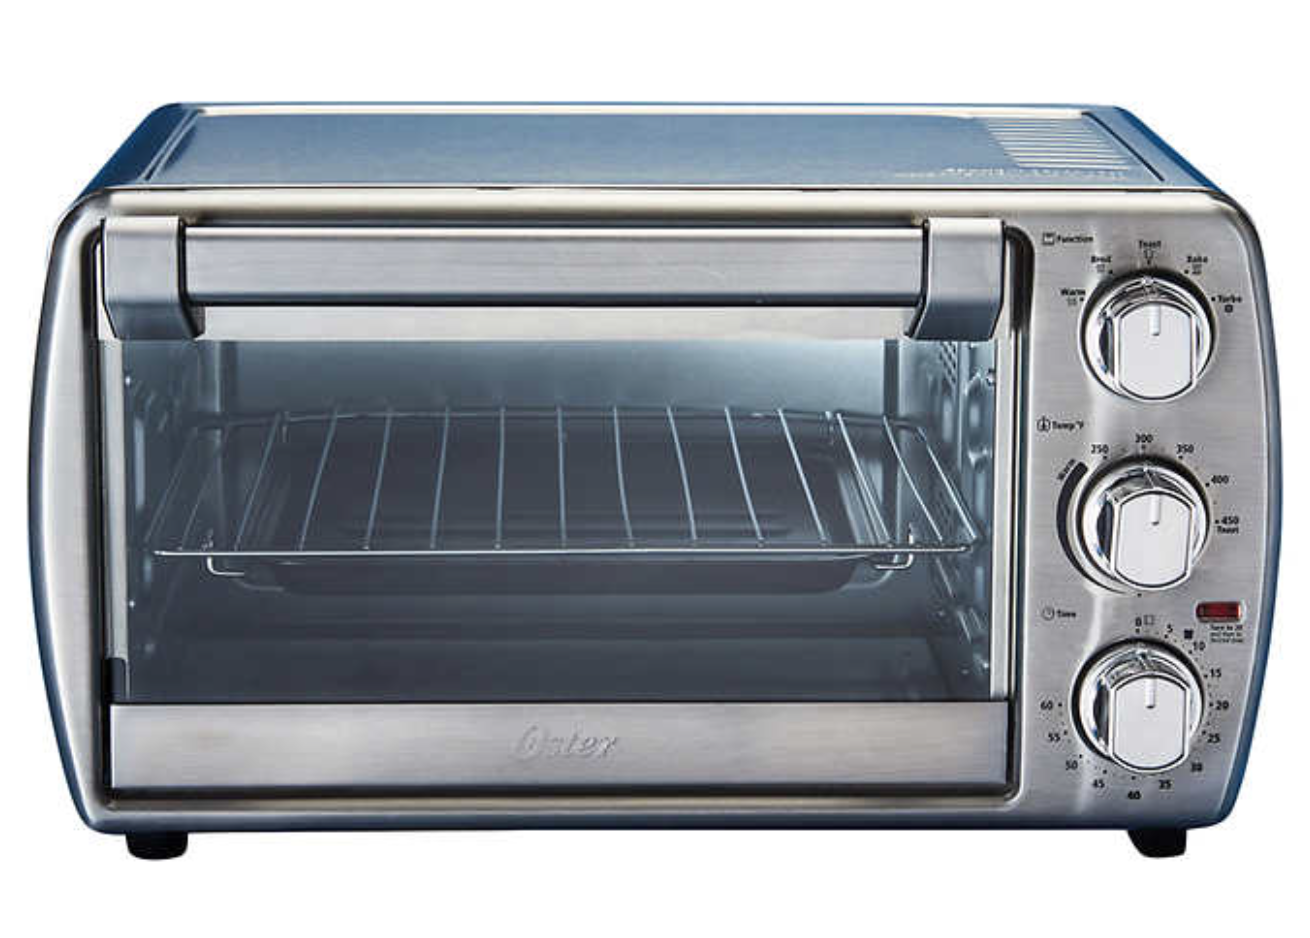 Oster 6 Slice Convection Countertop Oven Turbo Convection Heat